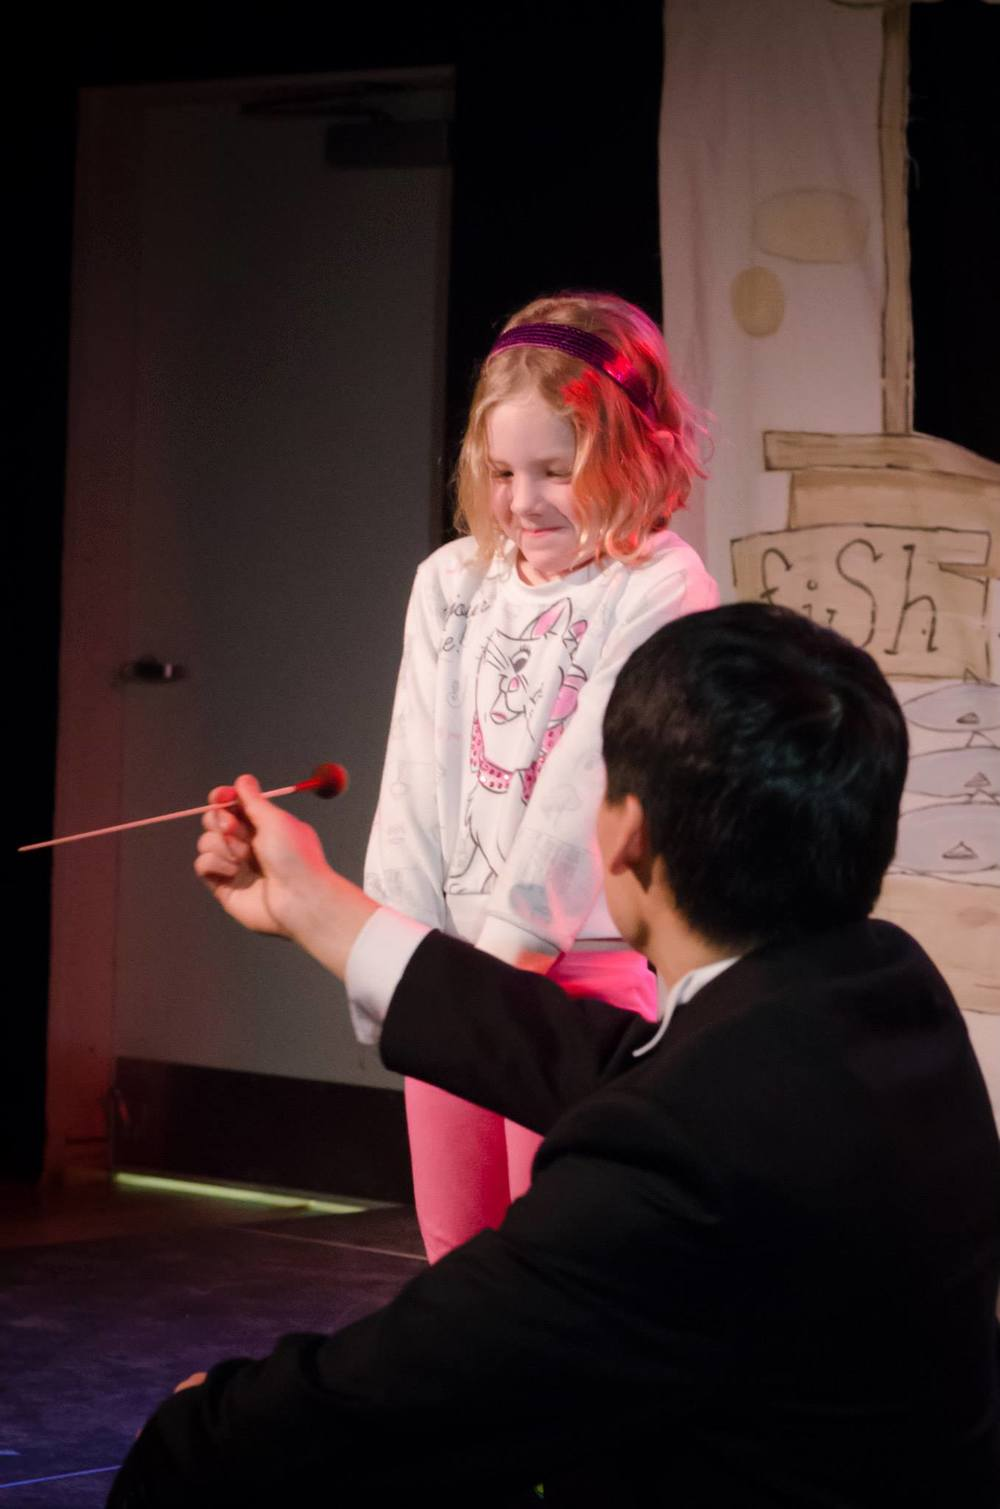 Introducing conducting to curious kids at the Portland Children's Museum